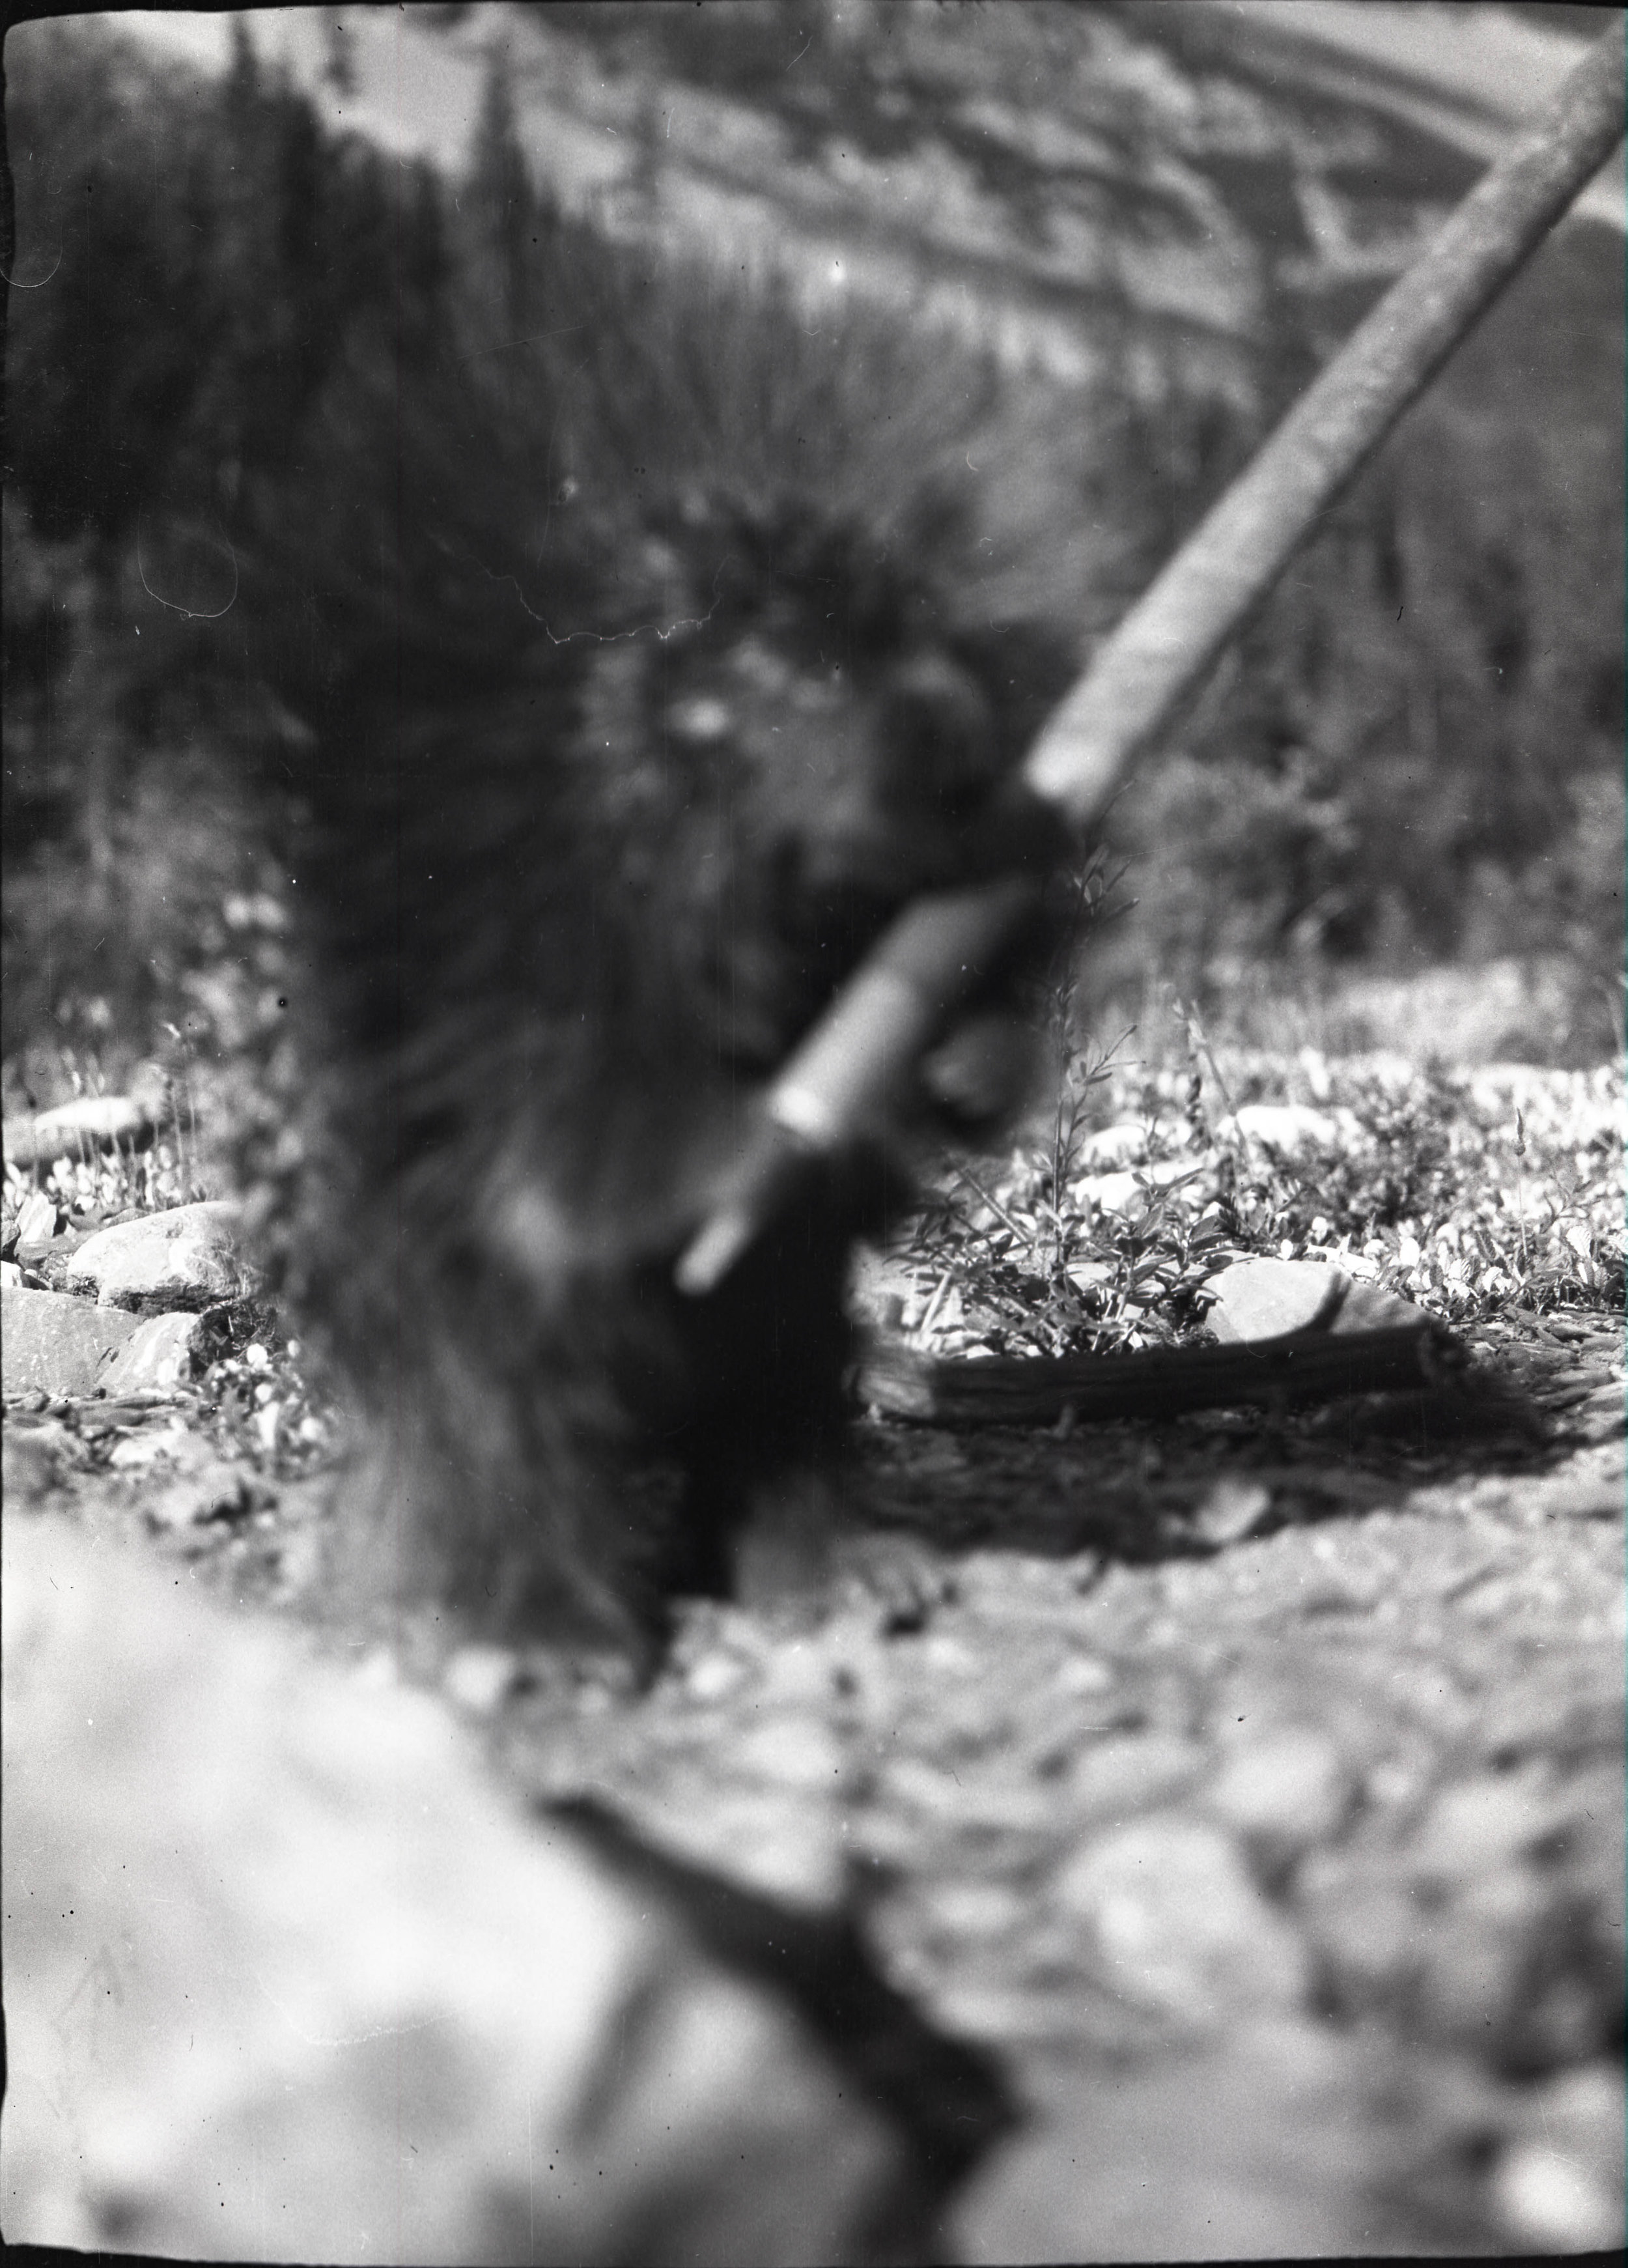 Also useful for keeping the occasional porcupine at bay - From the Andrew James Gilmour collection